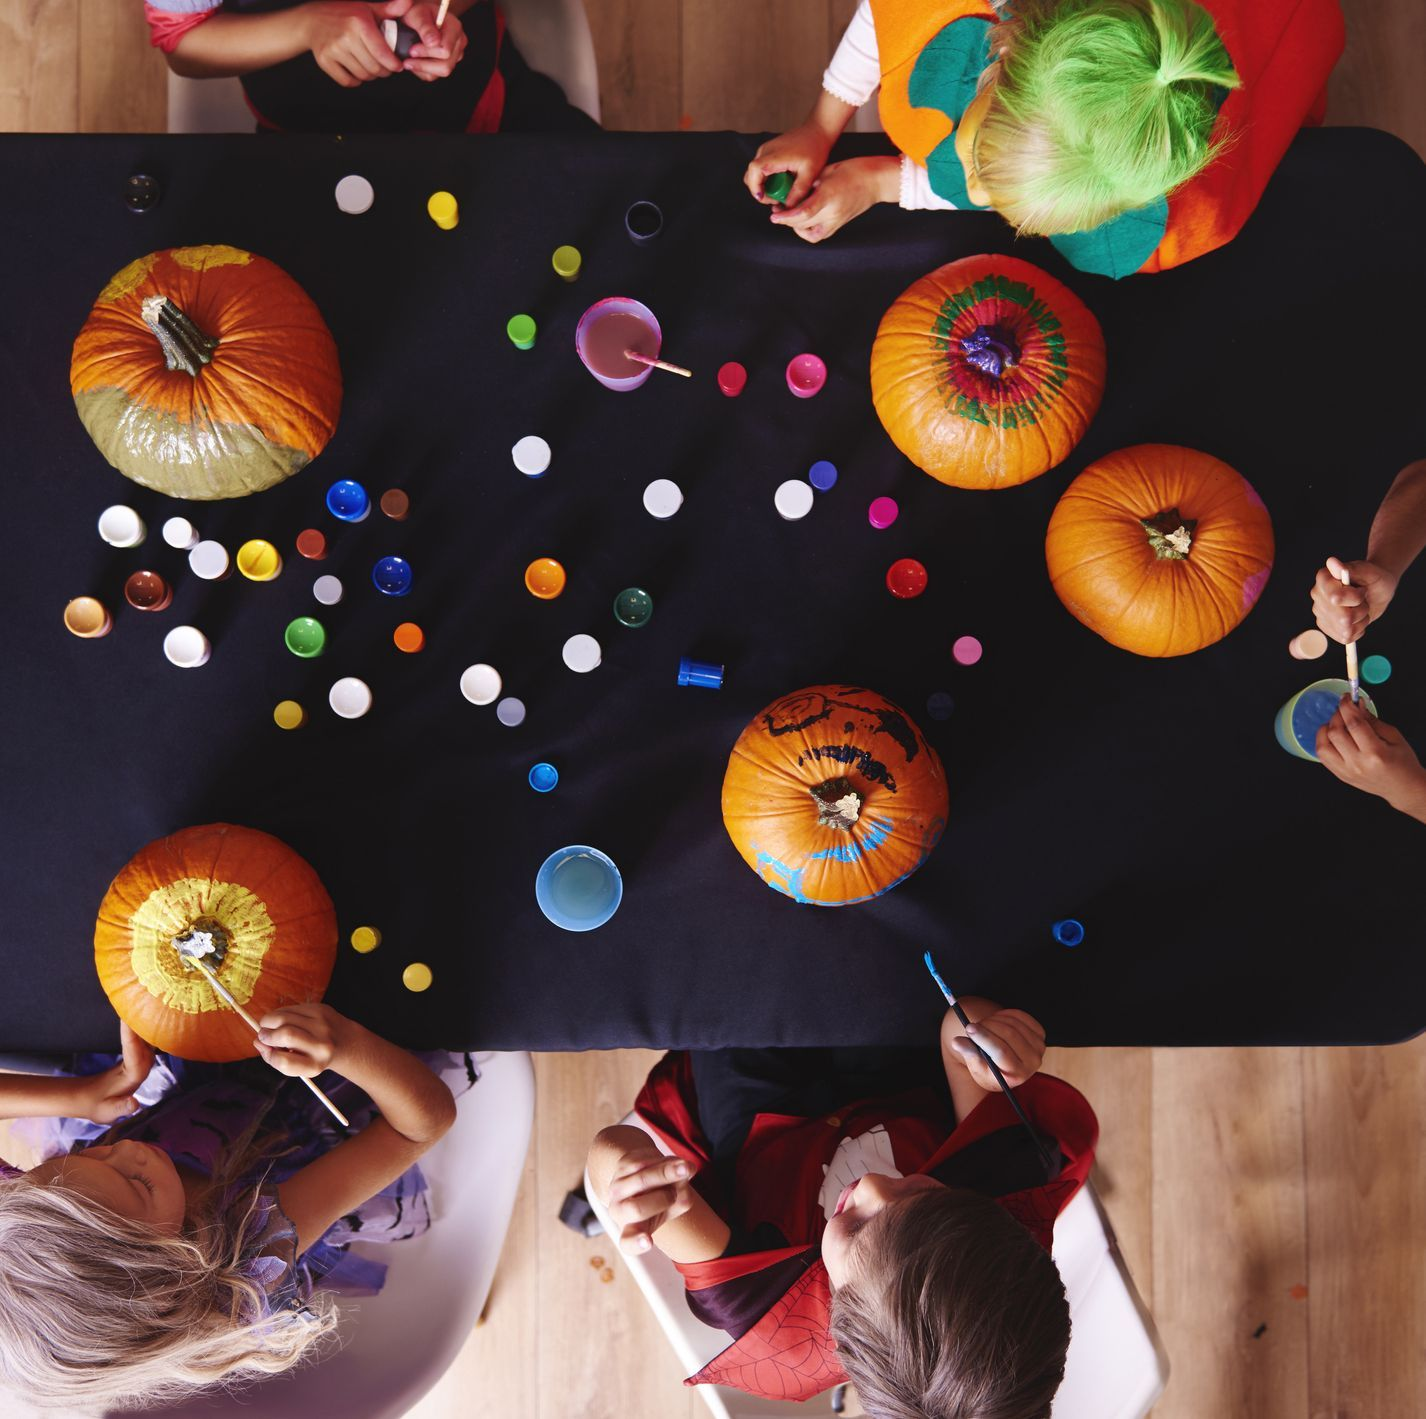 Fun Halloween Party Games for Kids and Adults You Can Make